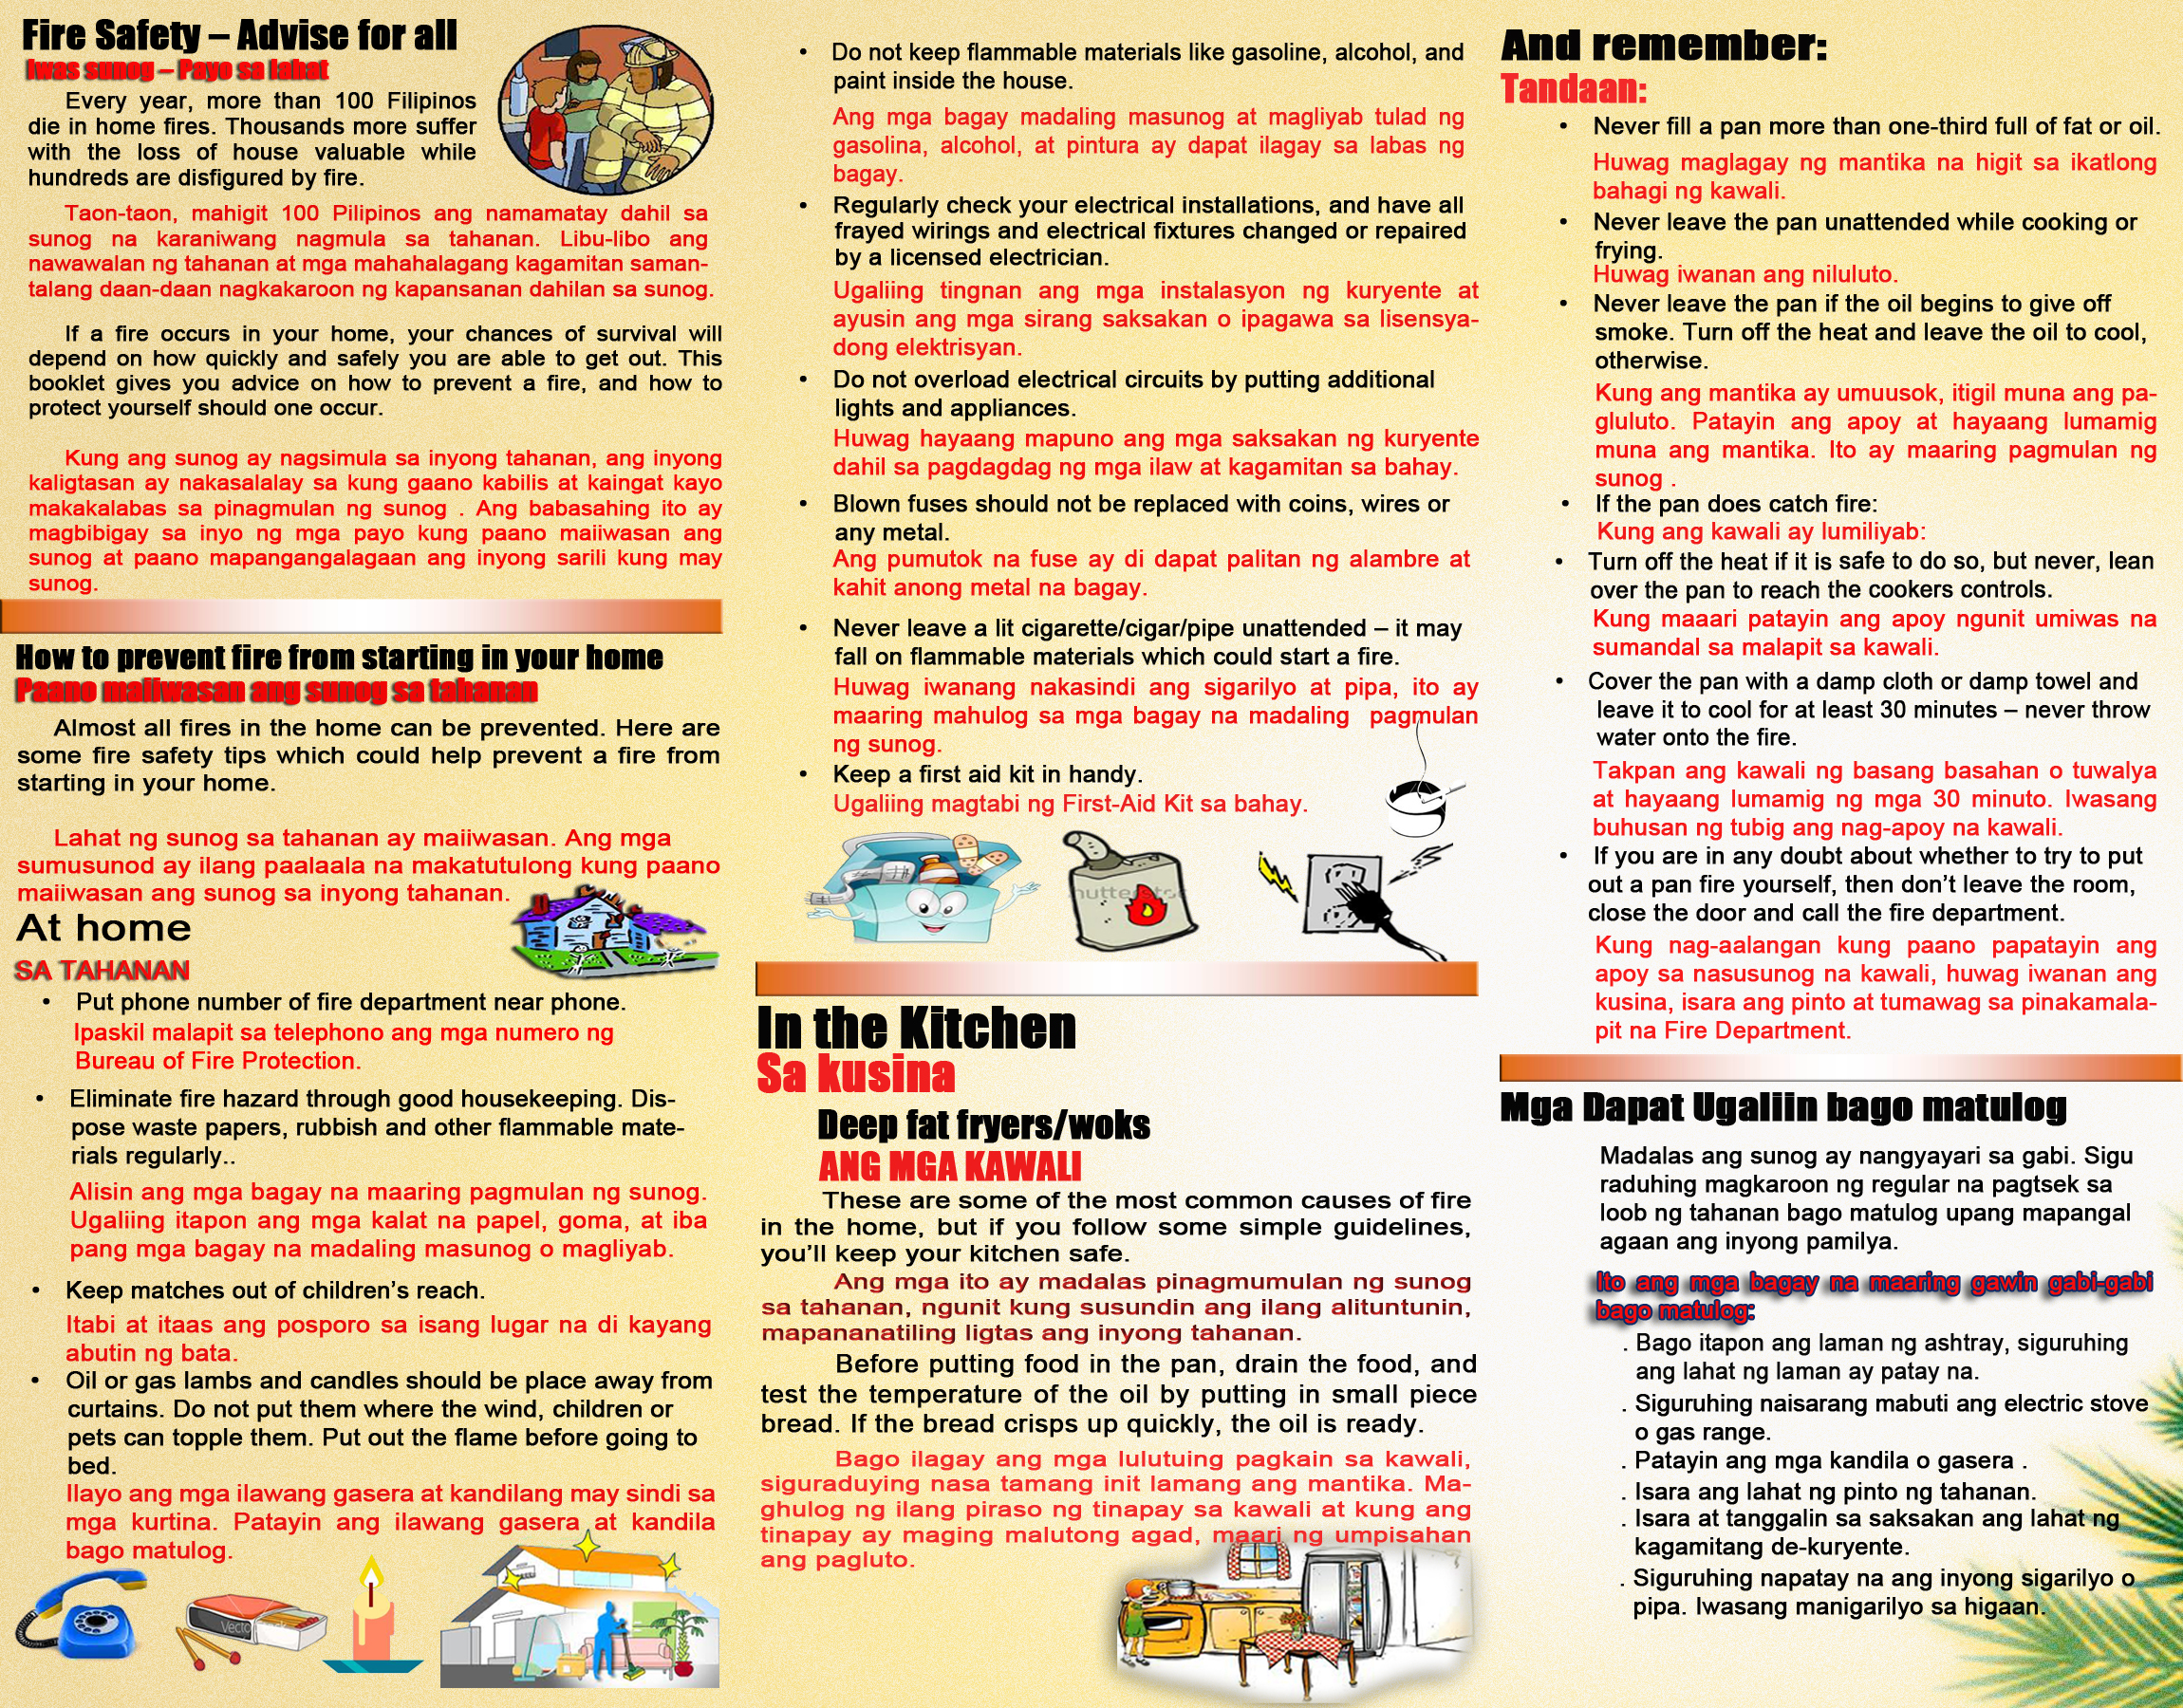 Fire Safety Tips Bureau Of Fire Protection Region 12